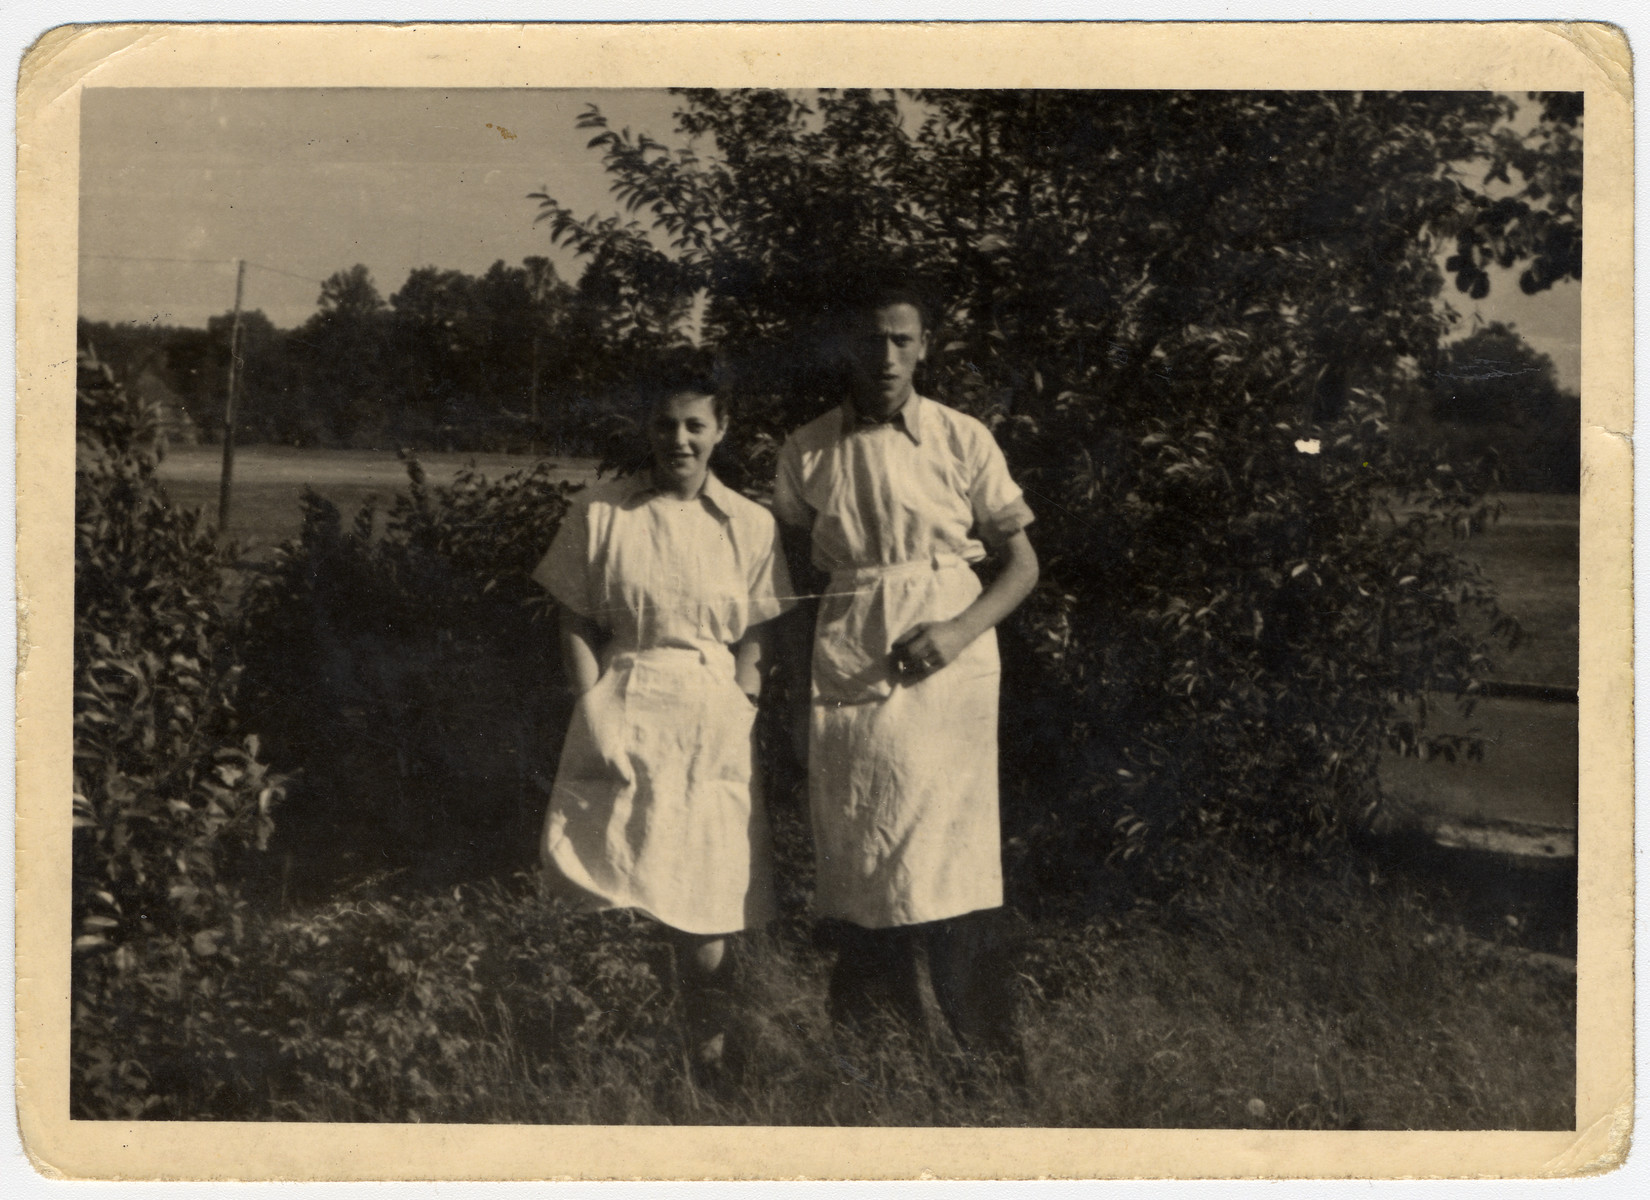 Two dental technician students stand in a garden in the Bergen-Belsen displaced persons camp.  Erno Pollak is on the right.